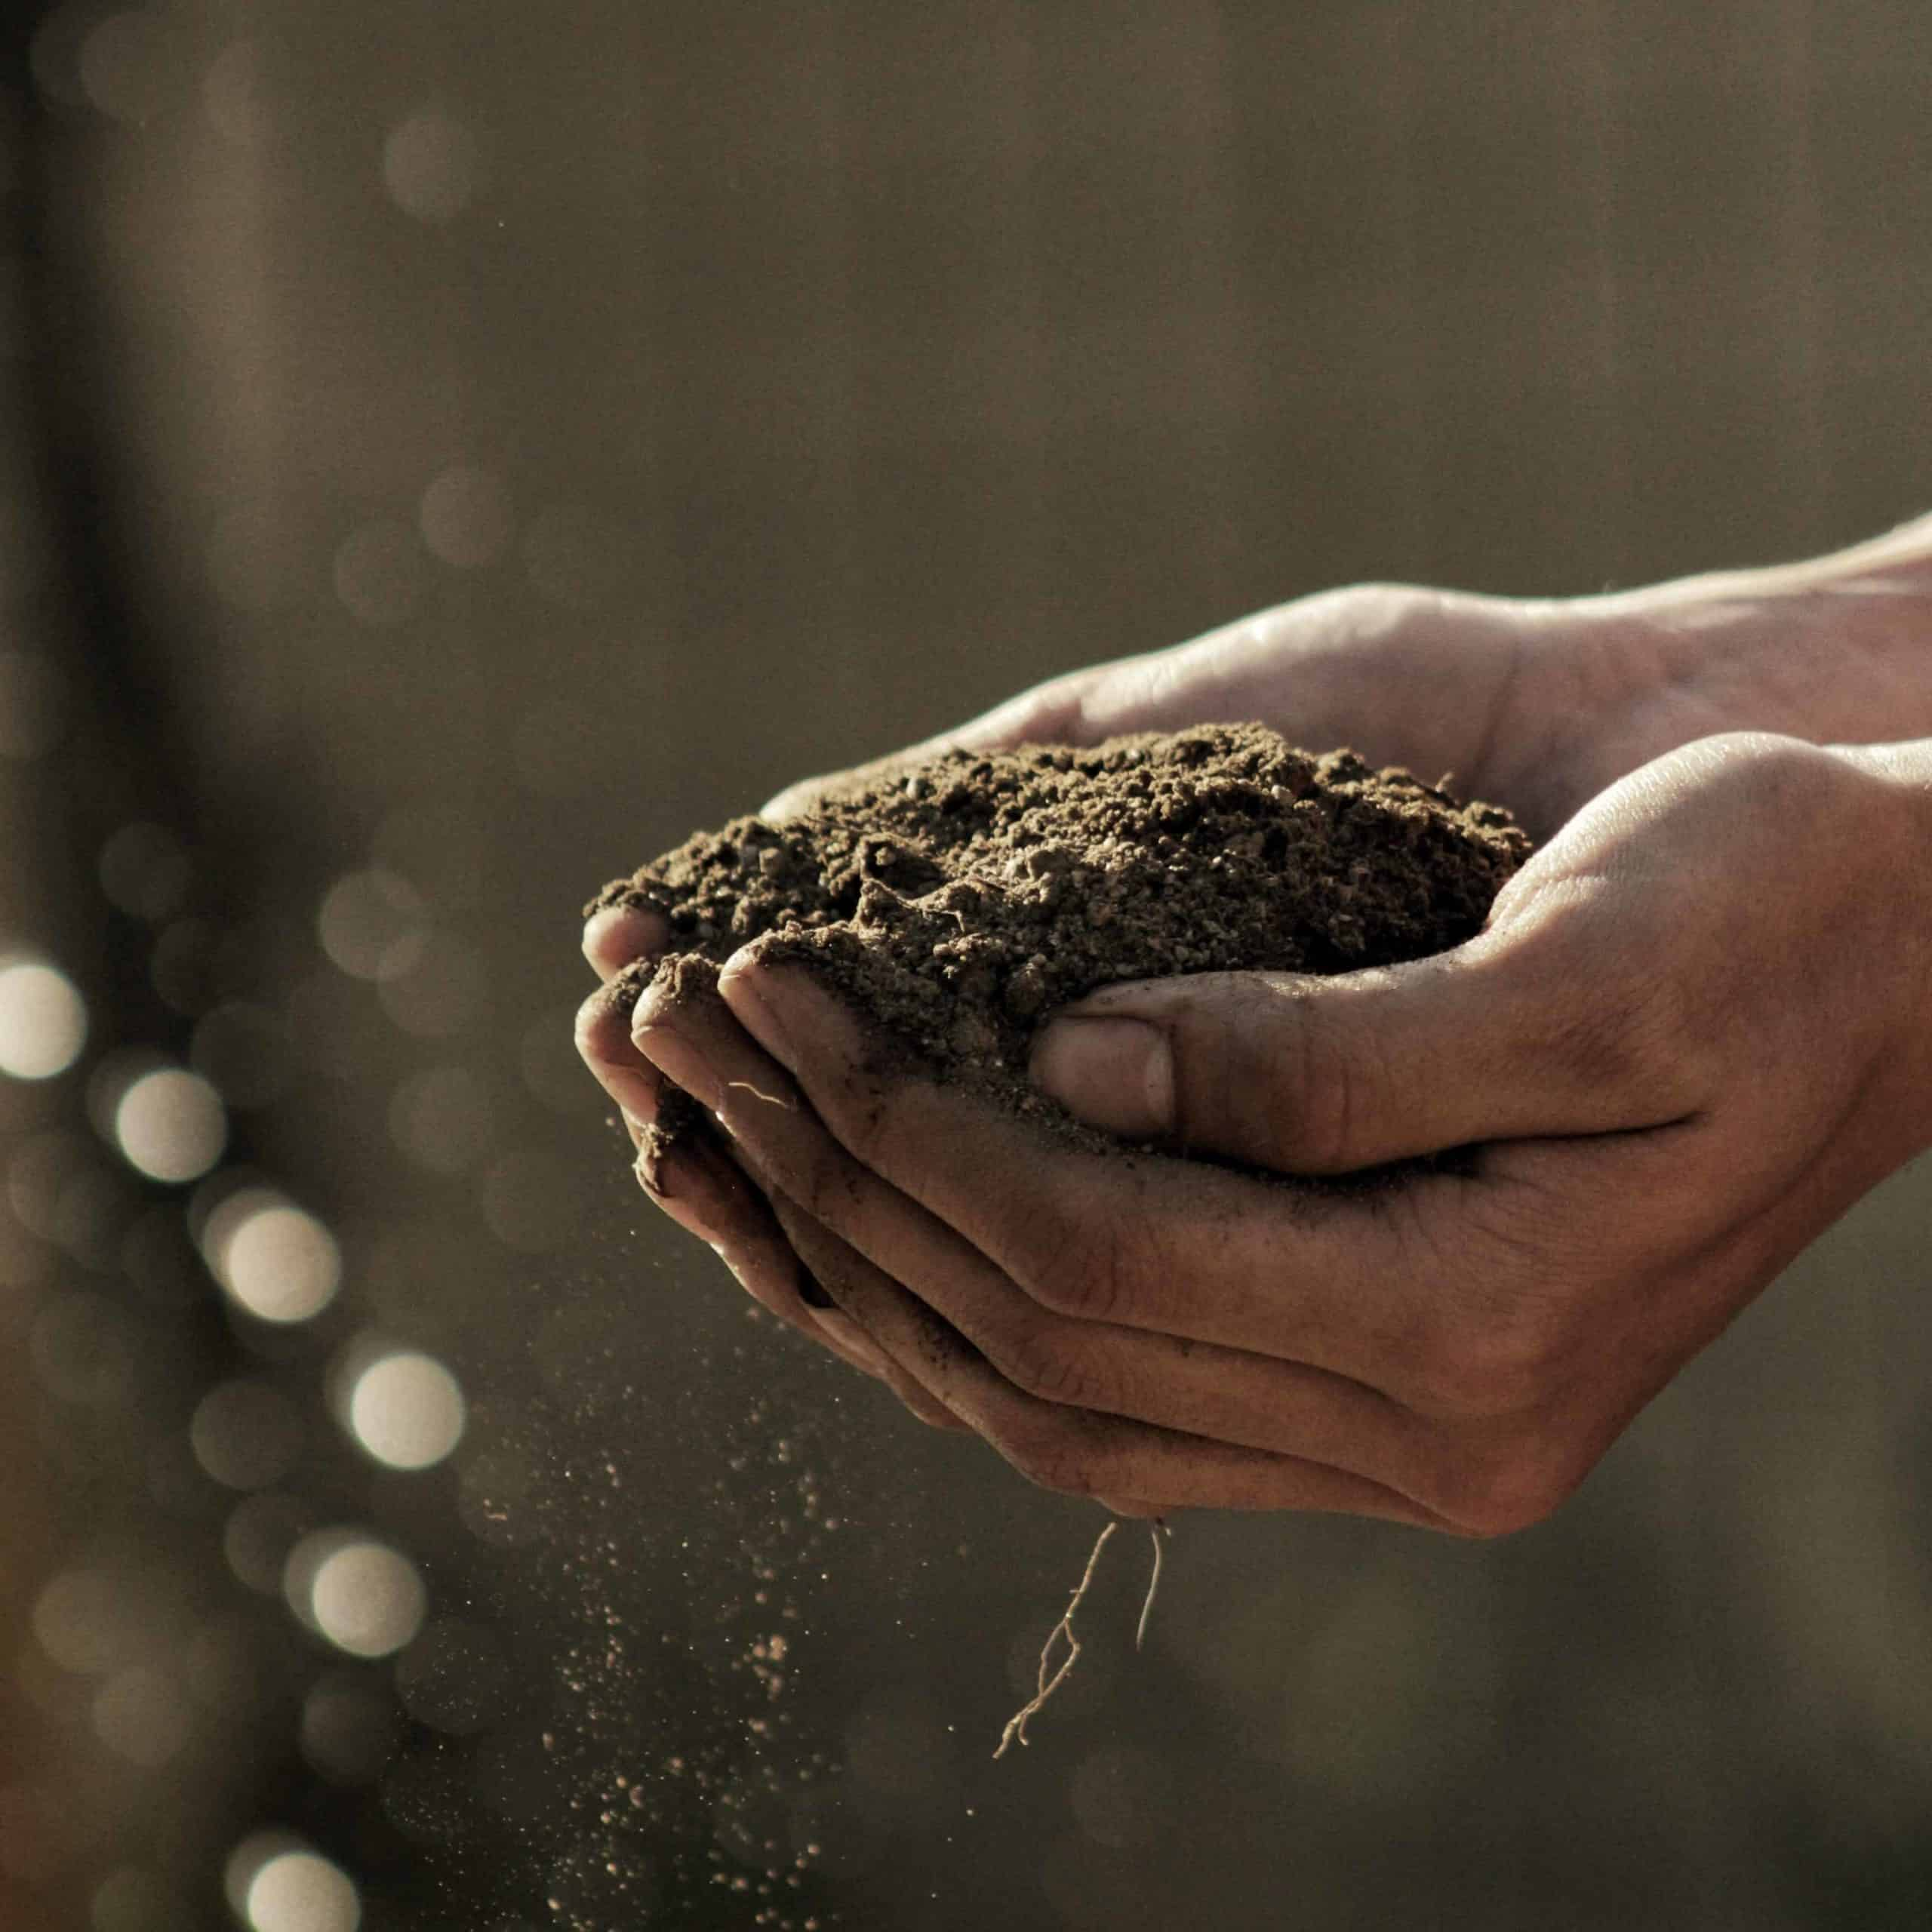 A close-up of hands holding dirt.